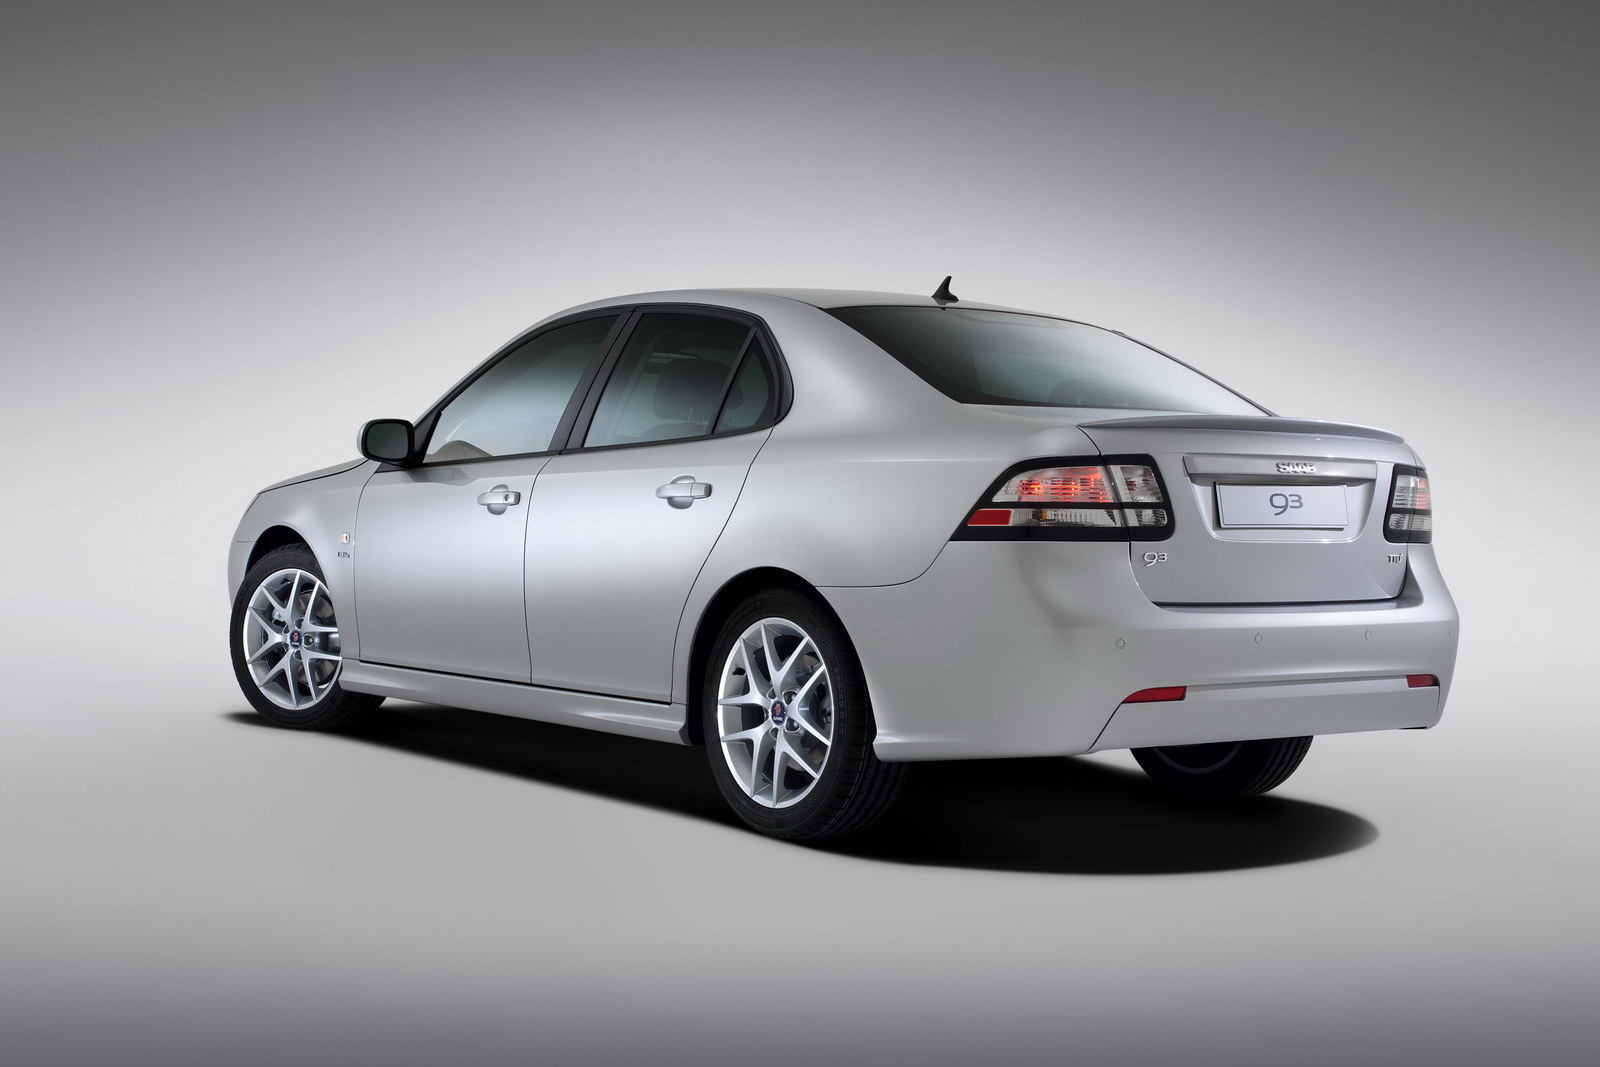 Spyker commits to new Saab 9-3 by 2012 | GoAuto